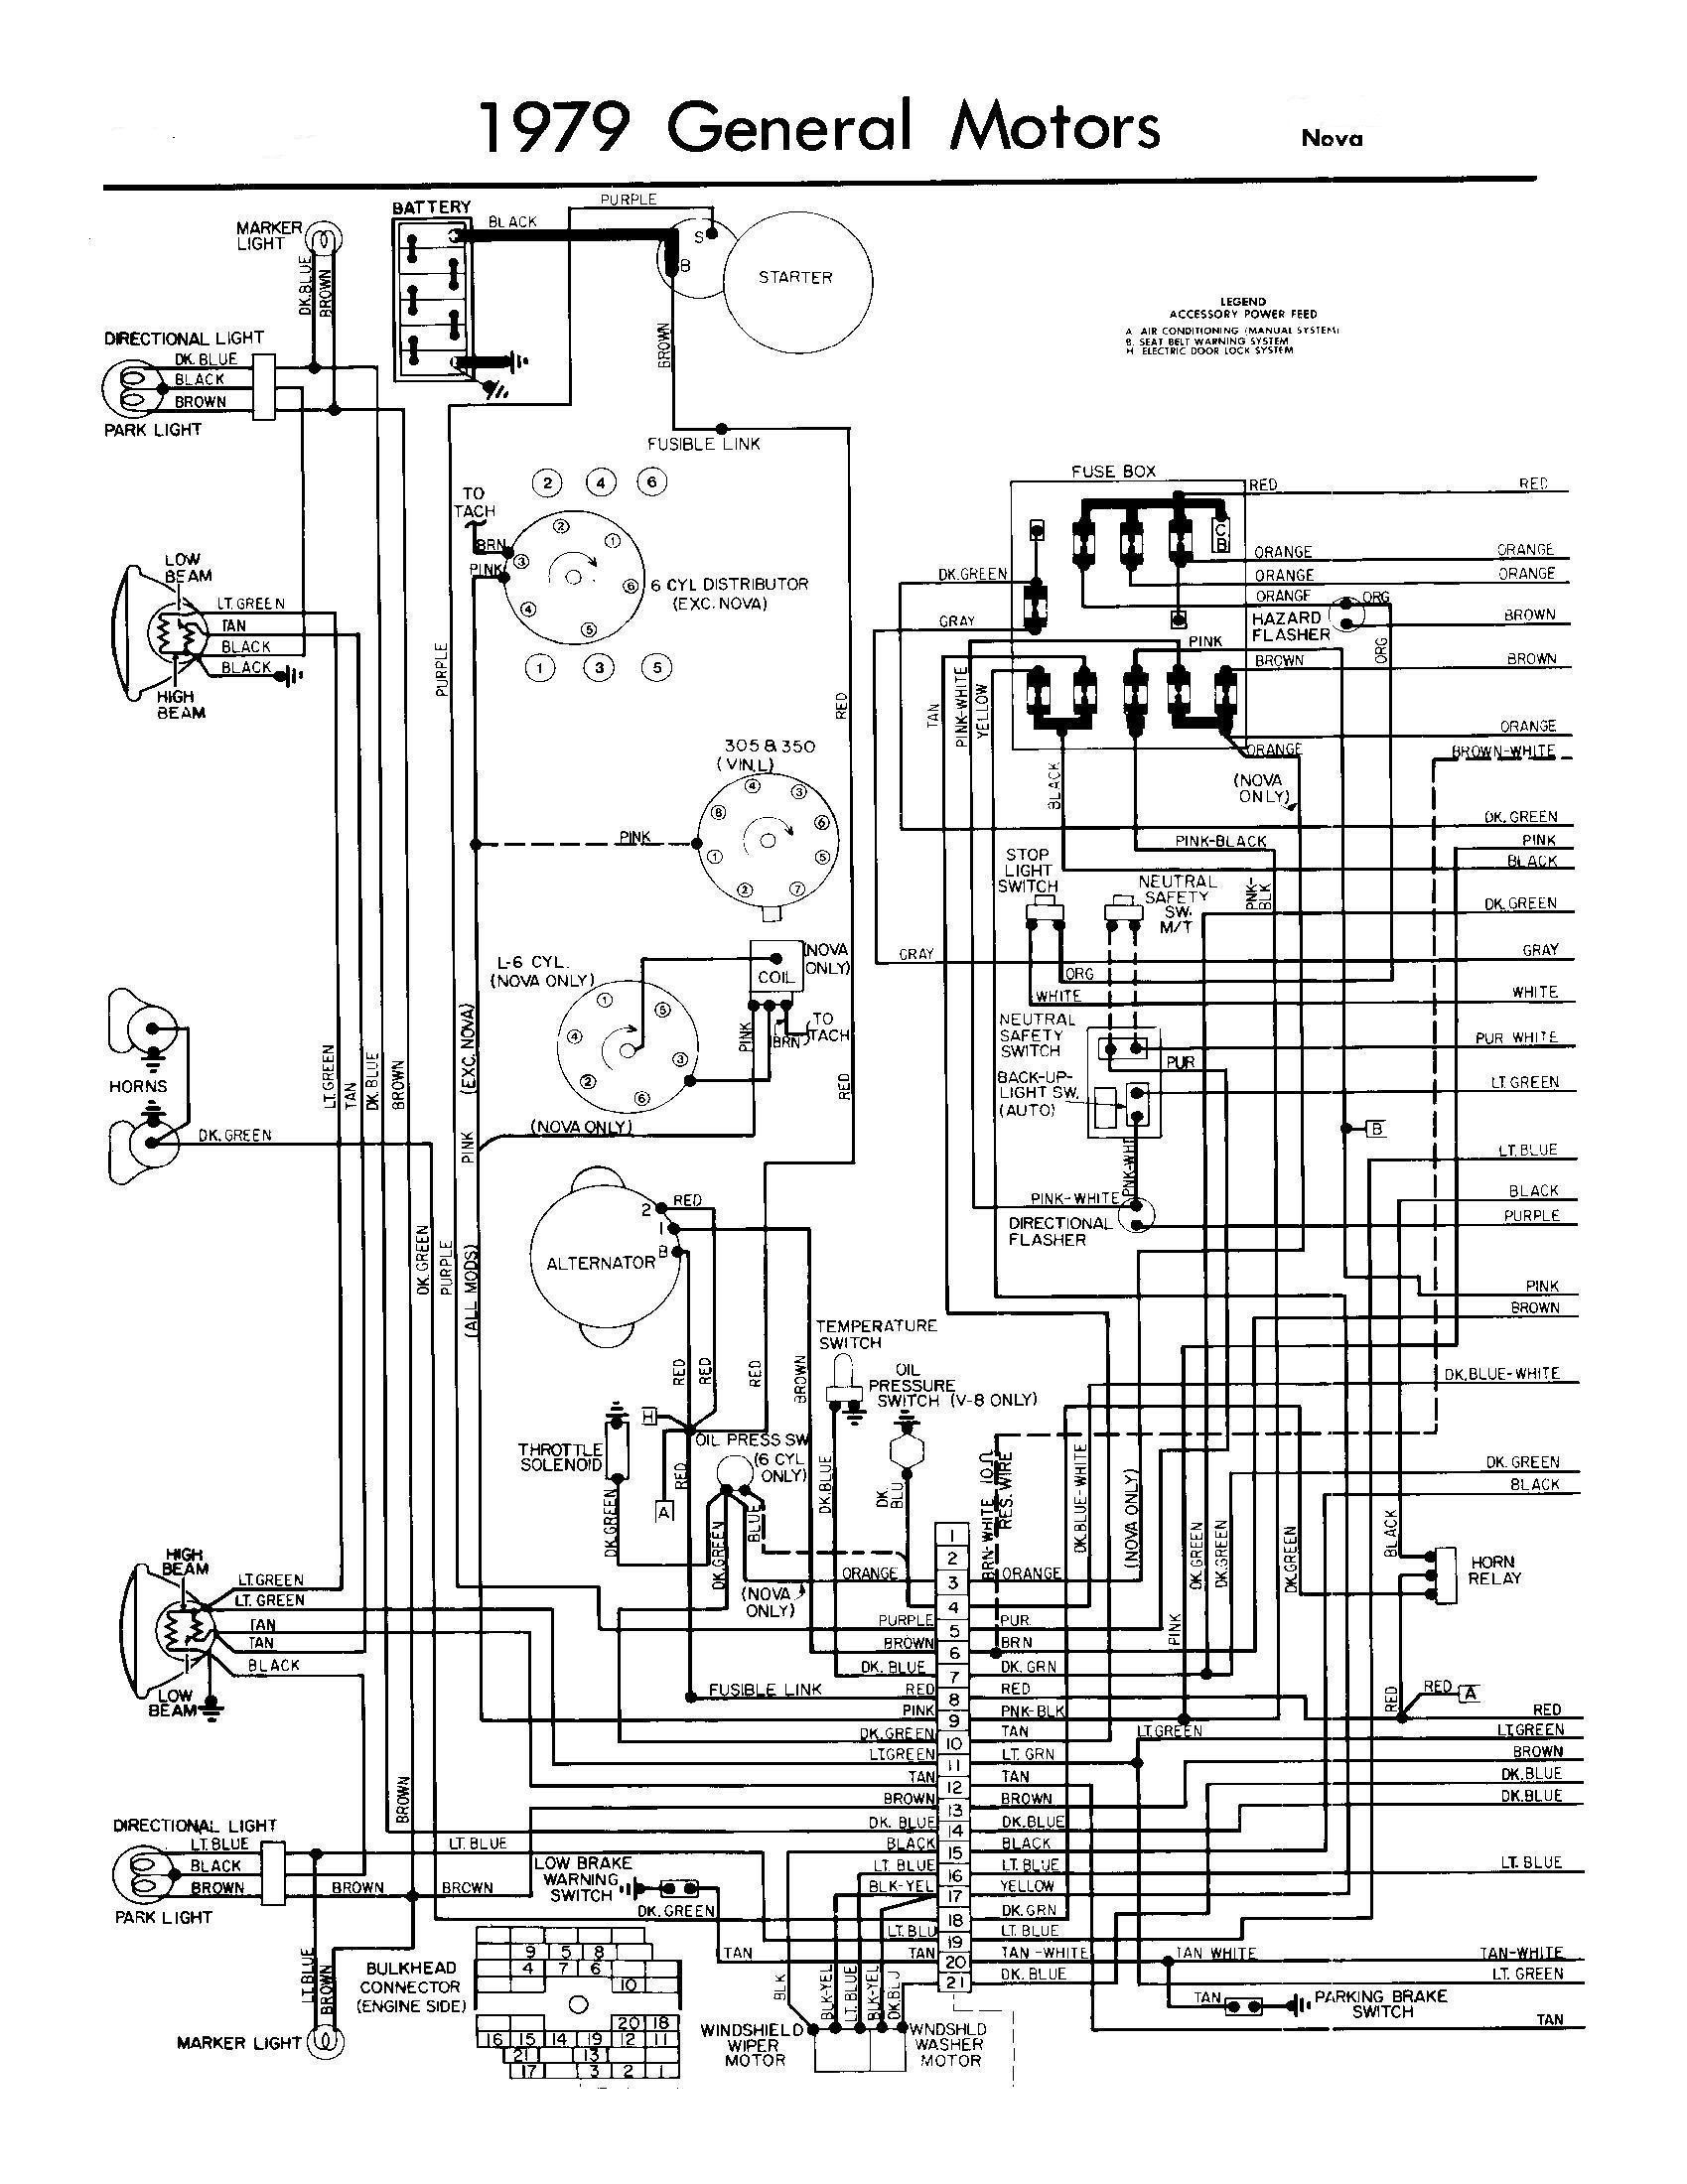 samsung sl 150 wiring diagram anything wiring diagrams \u2022 samsung vrt washer wiring diagram samsung sl 150 wiring diagram get free image about wiring diagram rh casiaroc co samsung washer wiring diagram samsung washer parts diagram